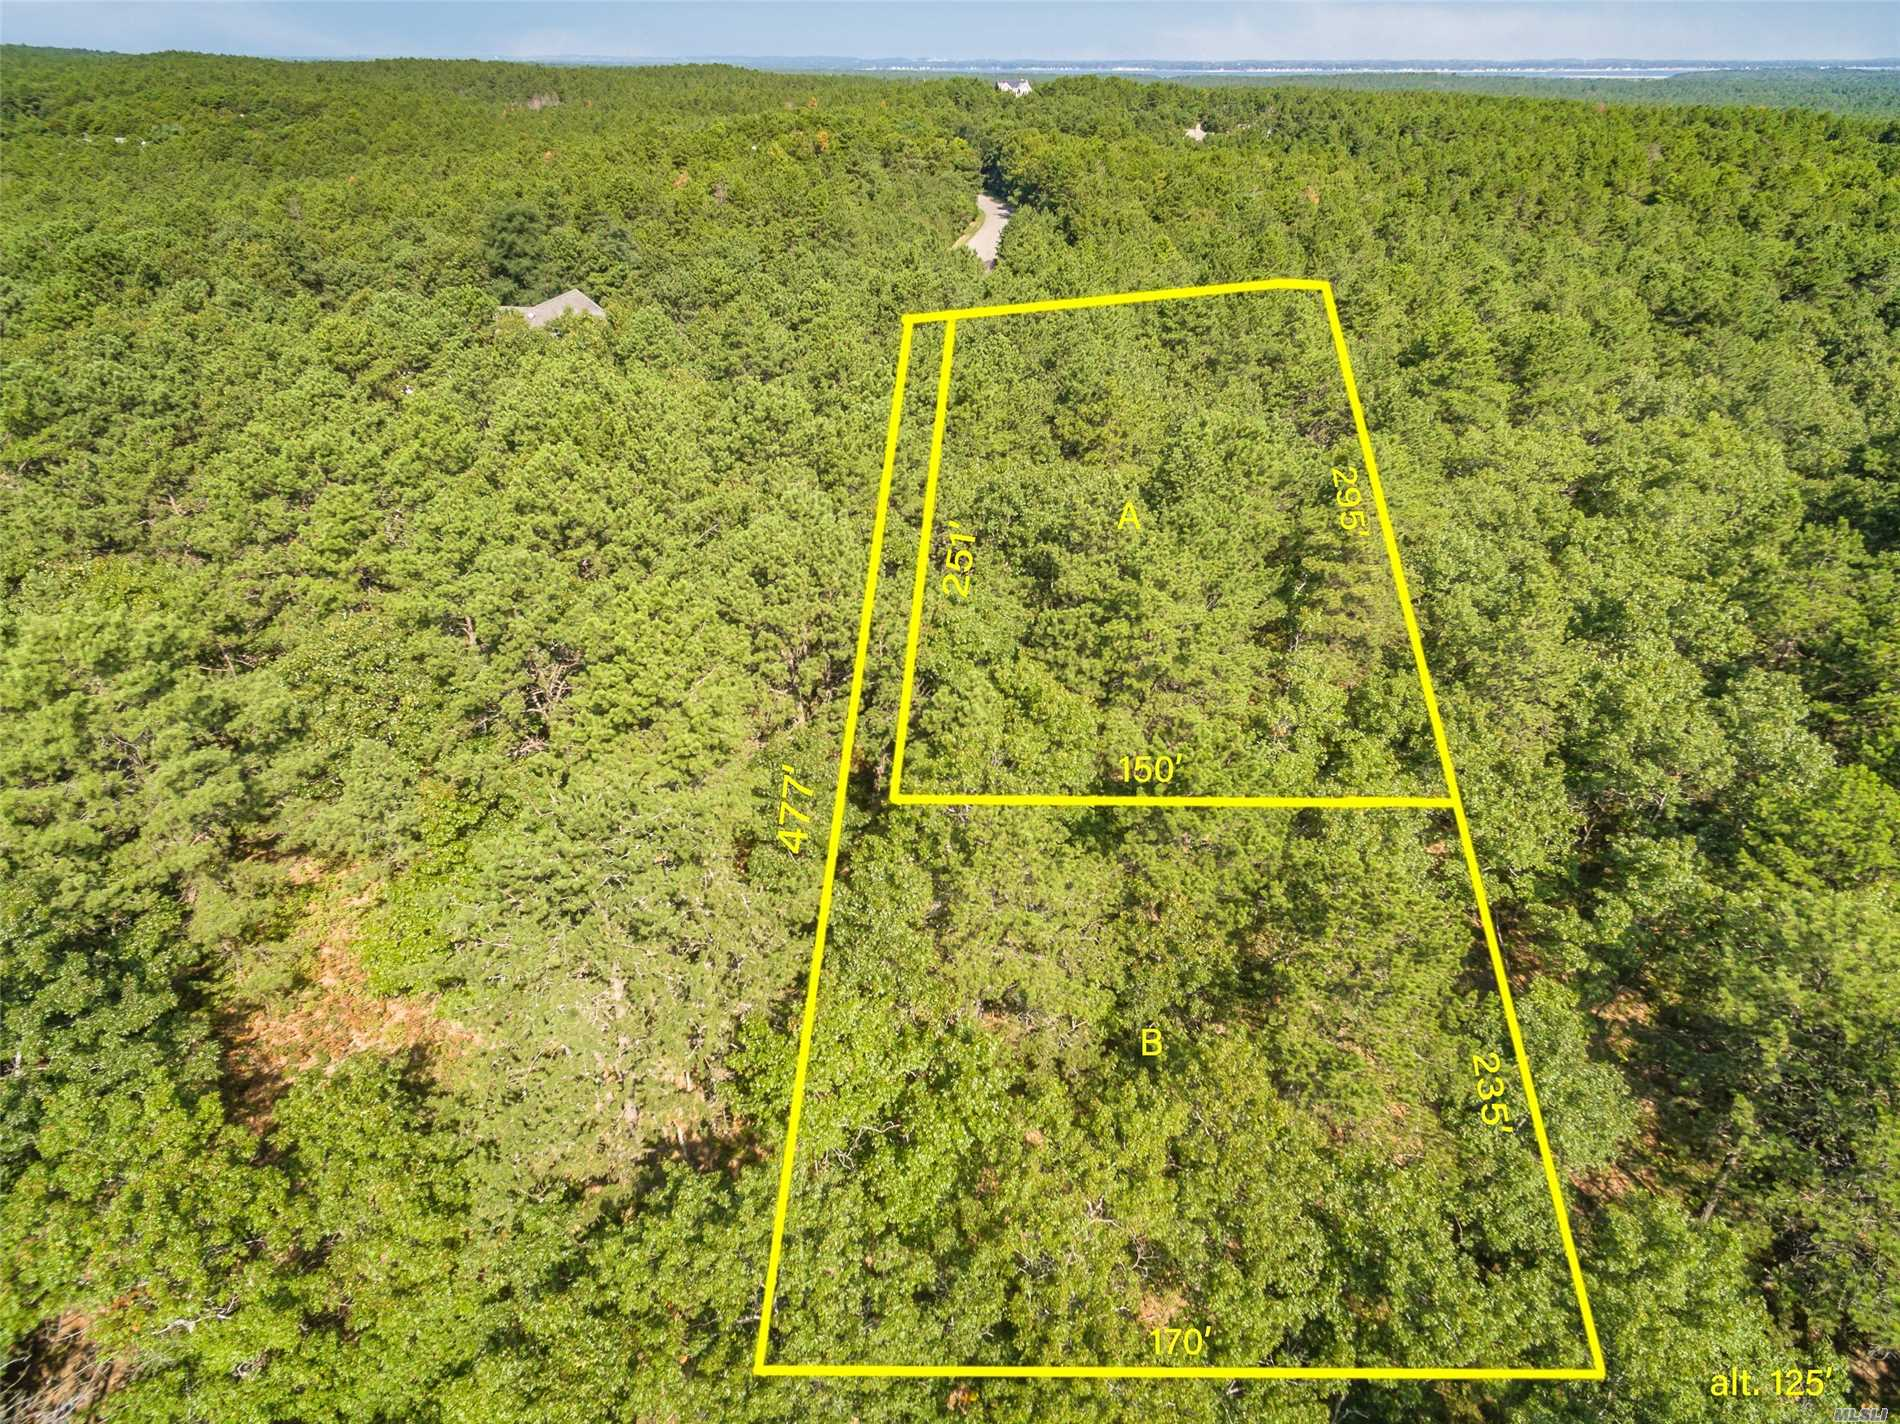 Beautiful Wooded 1 Acre Lot Adjoining A 16 Acre Preserve On One Of The Highest Points In Southampton Pines. Build On One Lot Or Buy Both Lots And Make A Family Compund. Close To Hampton's Beaches, Restaurants And Shopping. Easy To Commute To The City.